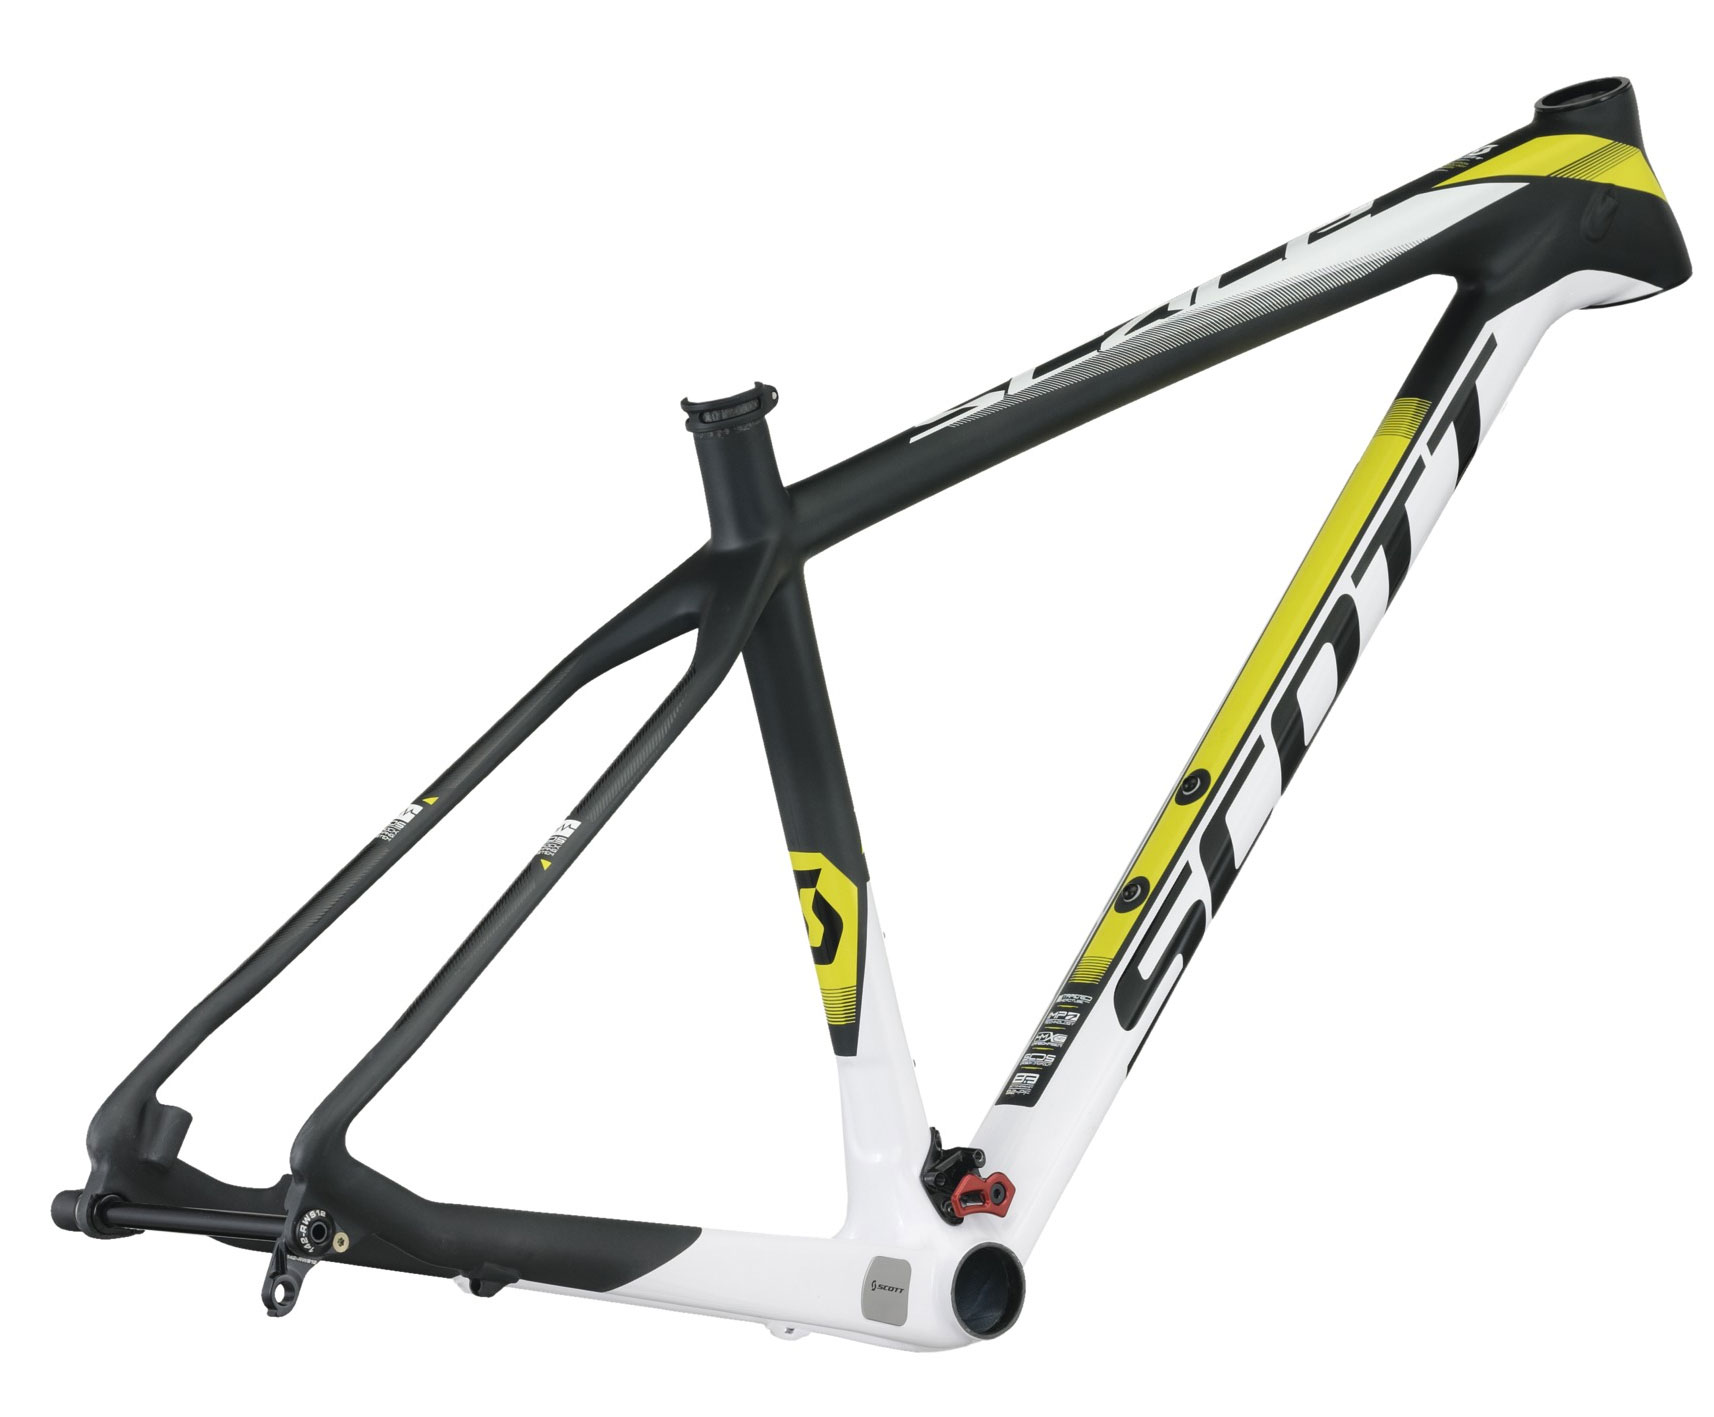 69d0ace268f Scott Scale 700 RC Frame - High Peaks Cyclery - Lake Placid, NY